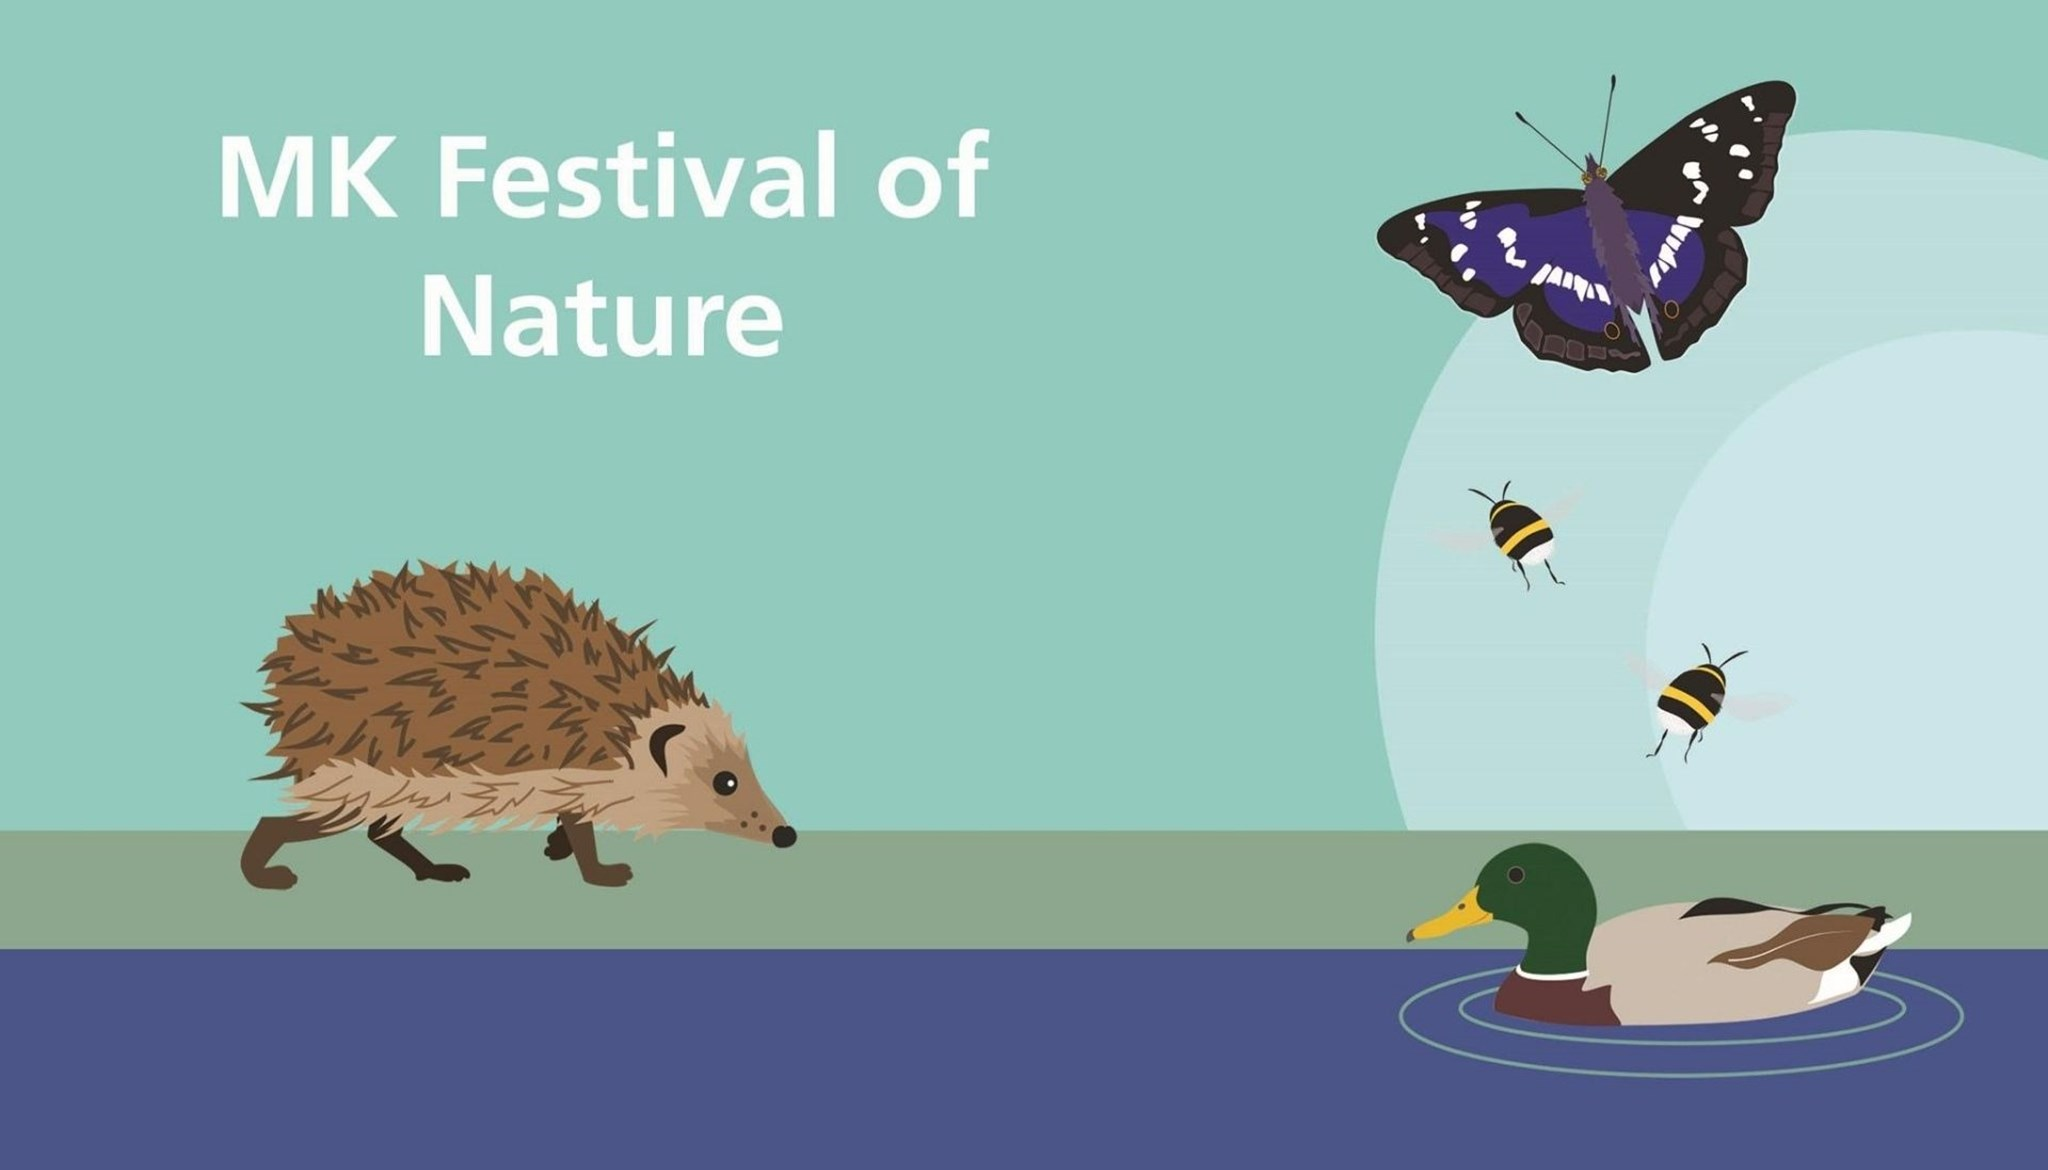 Festival of Nature Media Banner Image.jpg